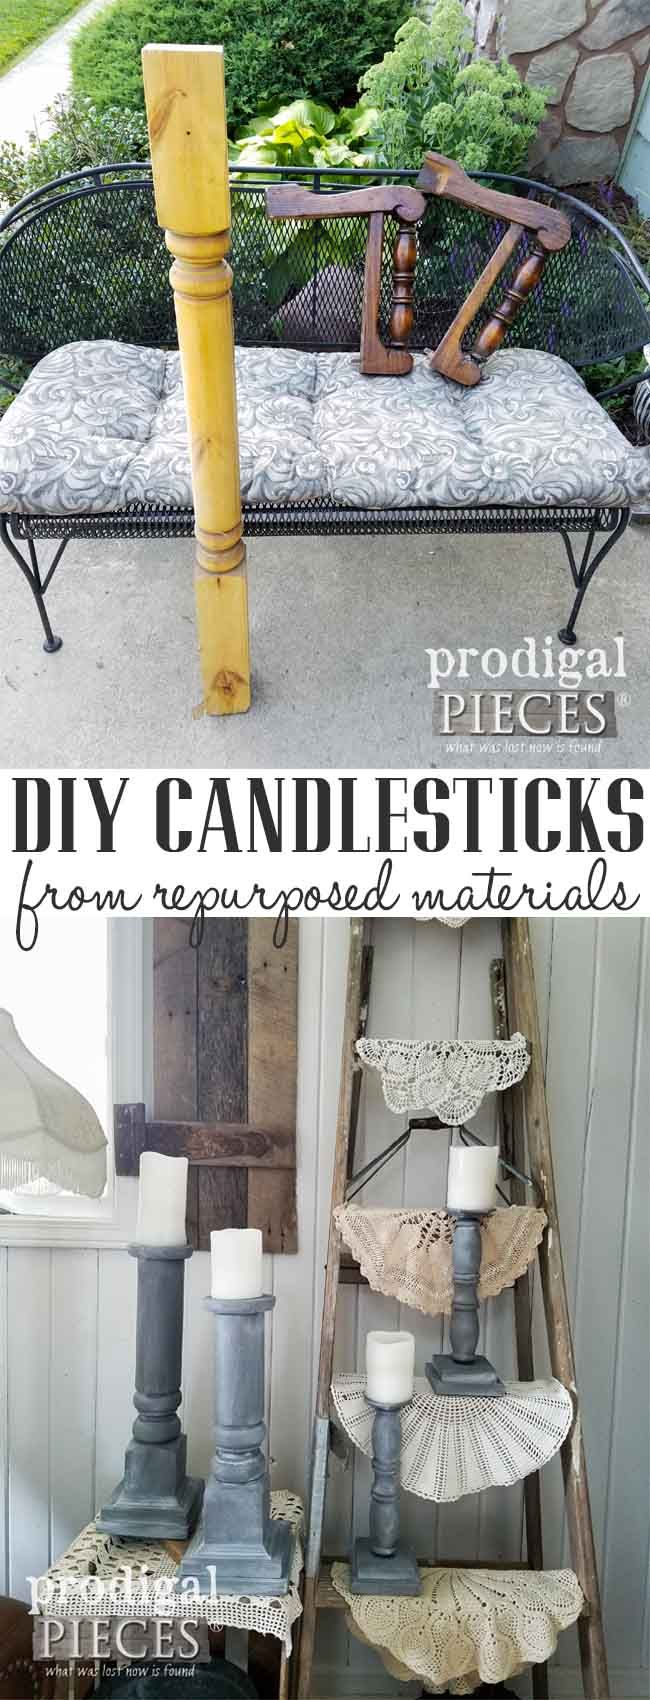 Create these DIY candlesticks using repurposed materials and this tutorial by Prodigal Pieces | prodigalpieces.com